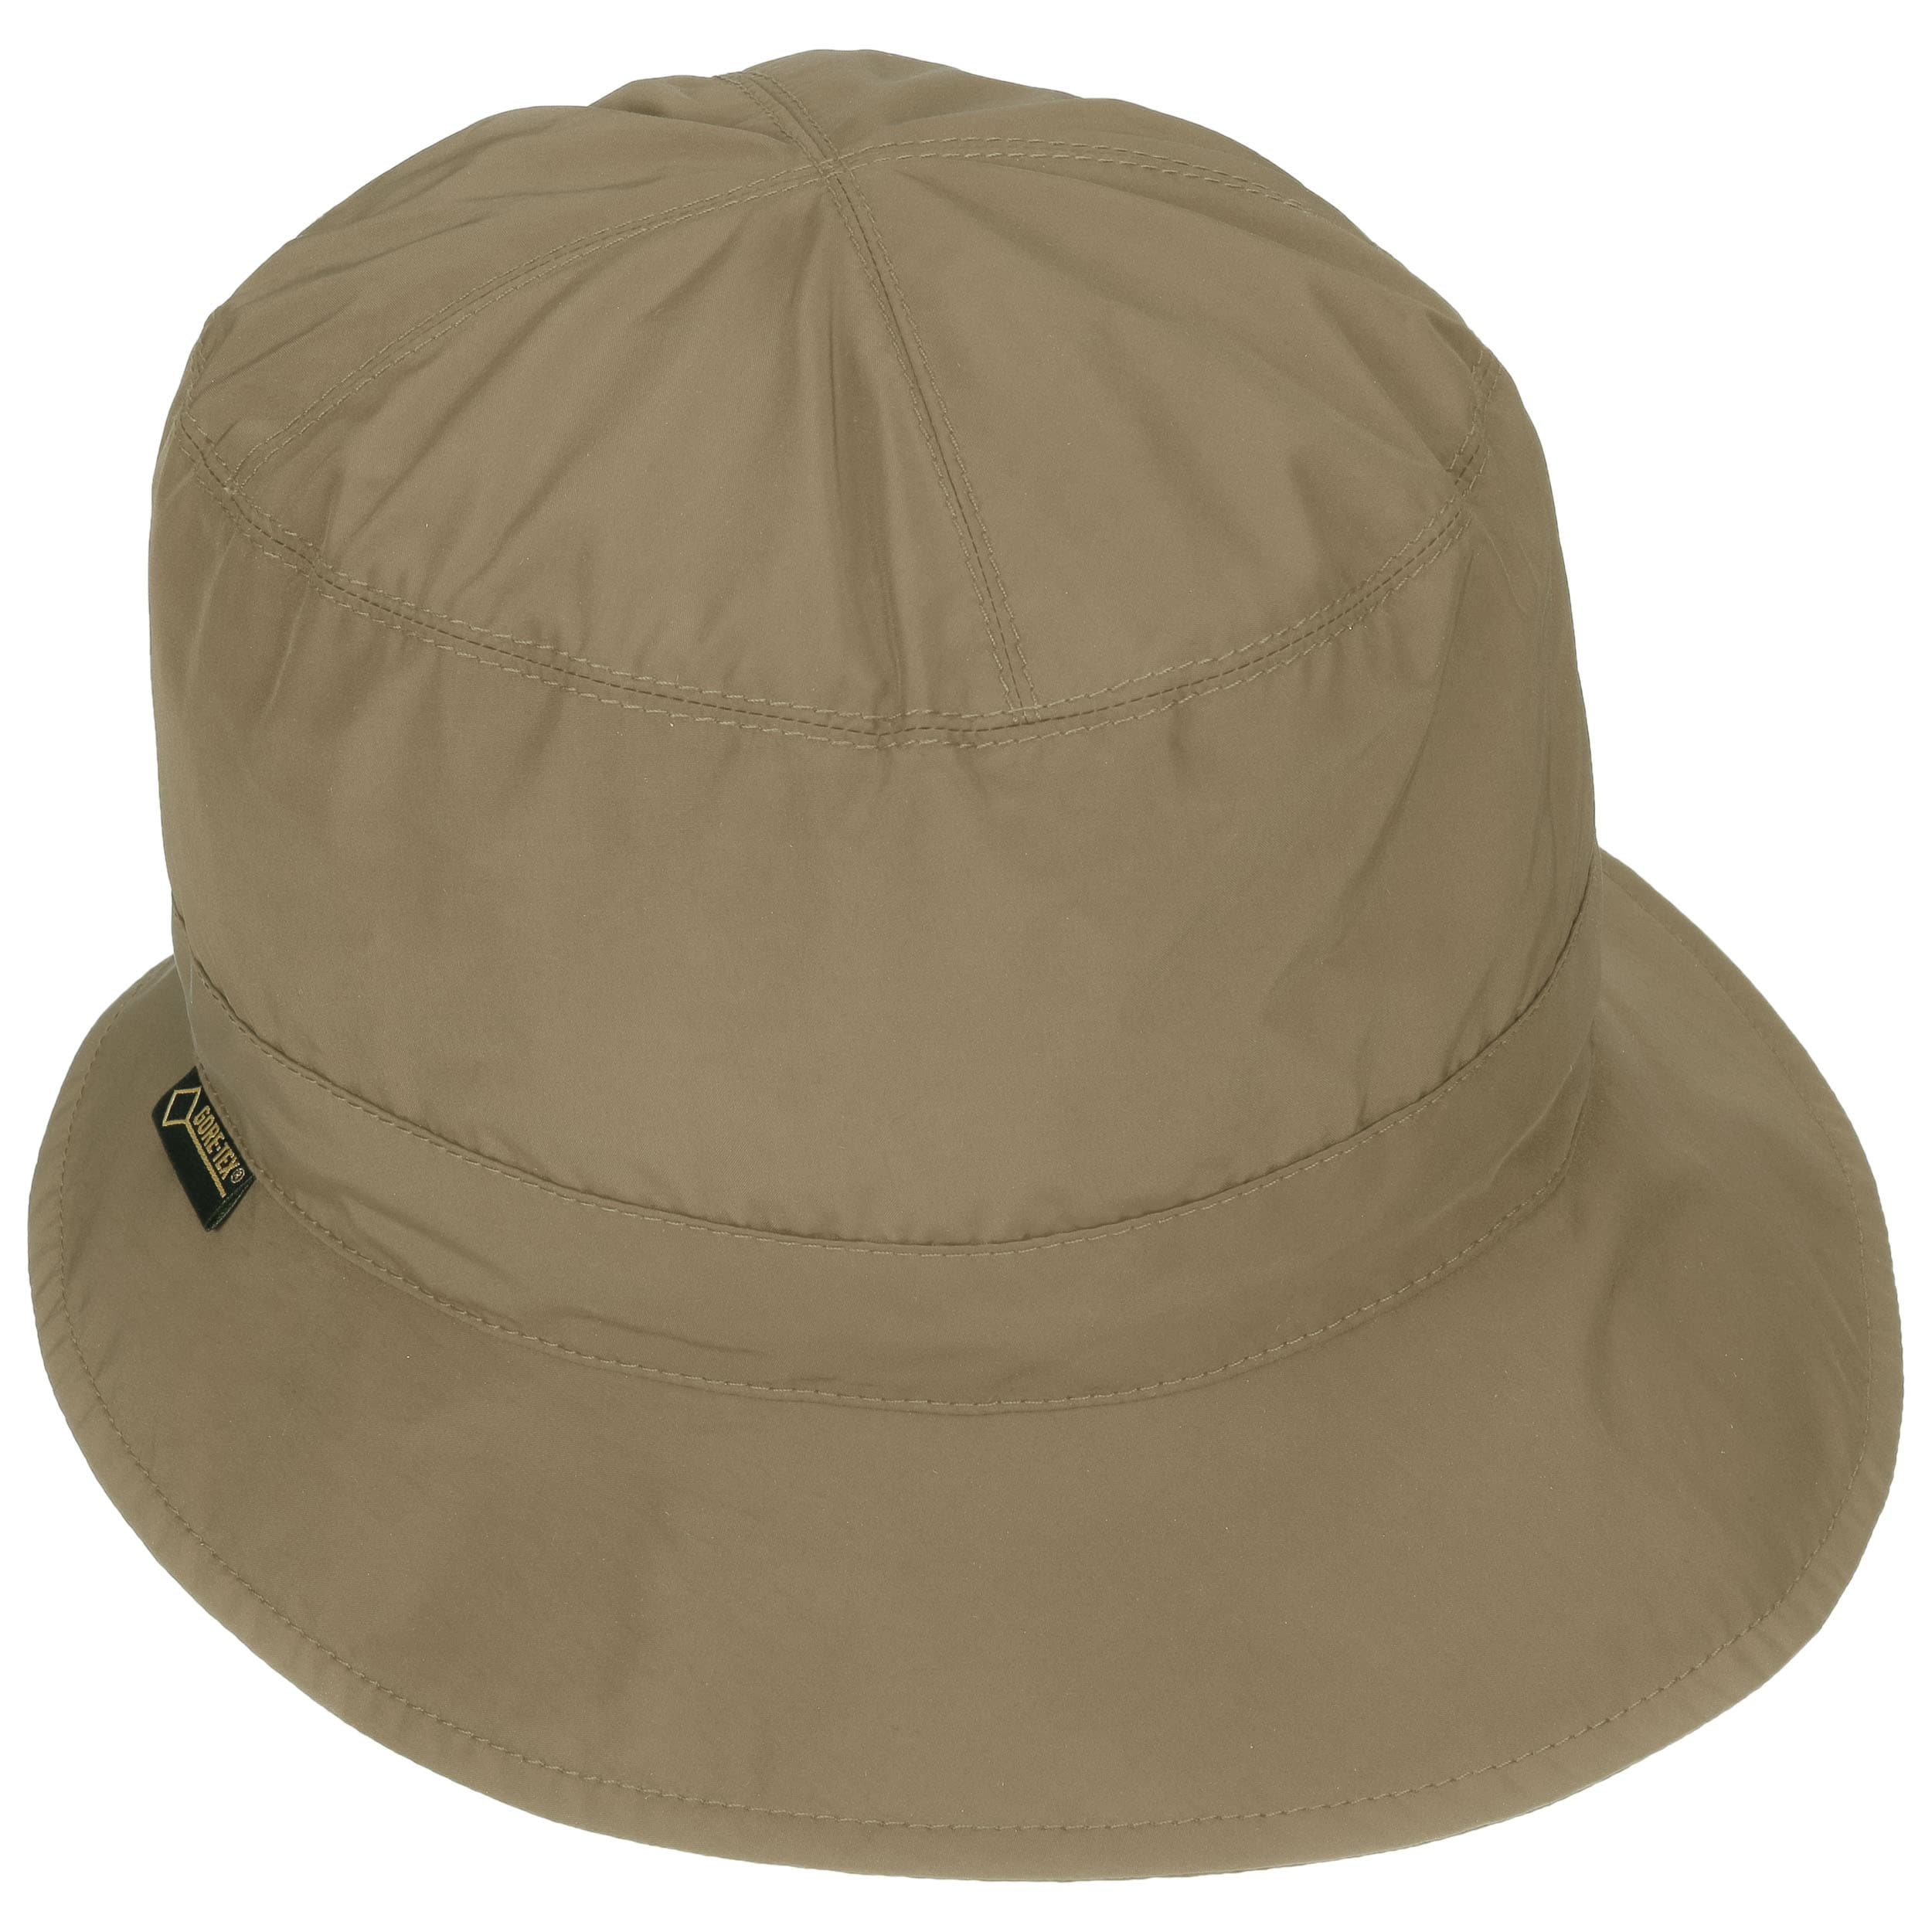 0105c3cb83c ... Gore-Tex Outdoor Hat by Seeberger - red 2 ...